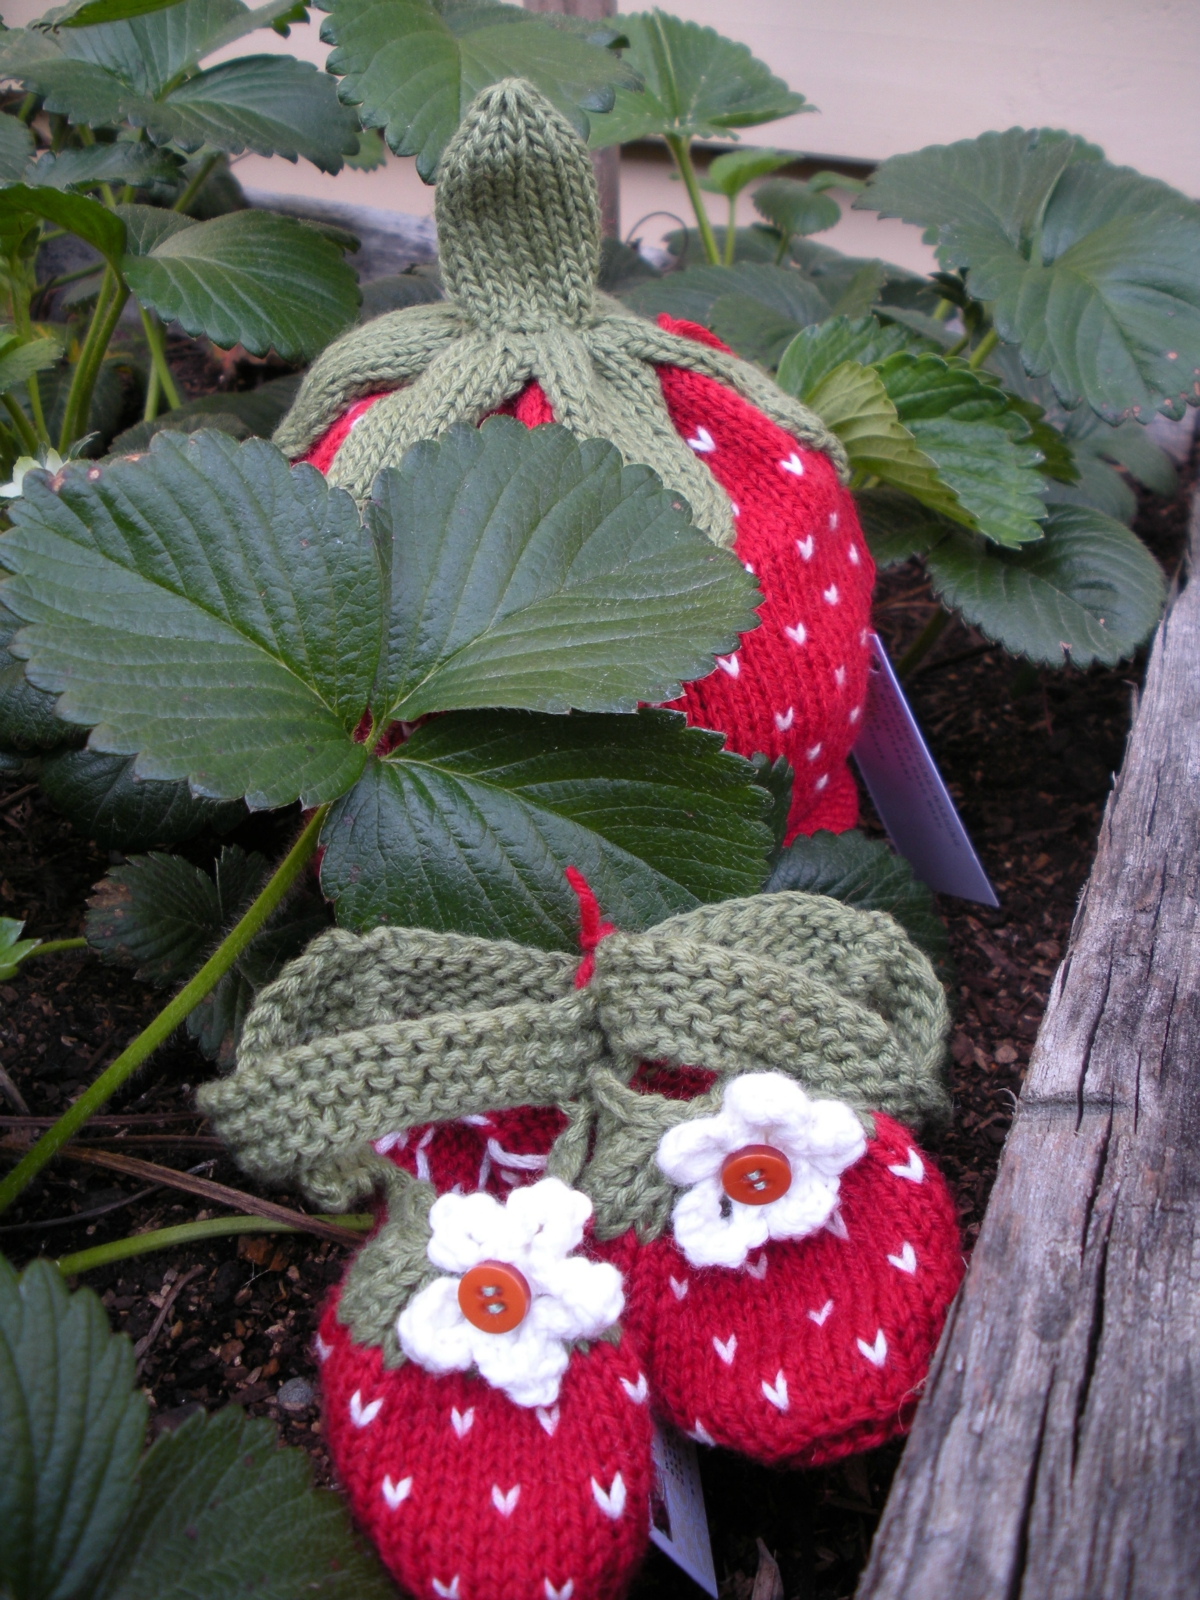 Intarsia Knitting Patterns For Children : Hand Knitted Strawberry Booties Felt